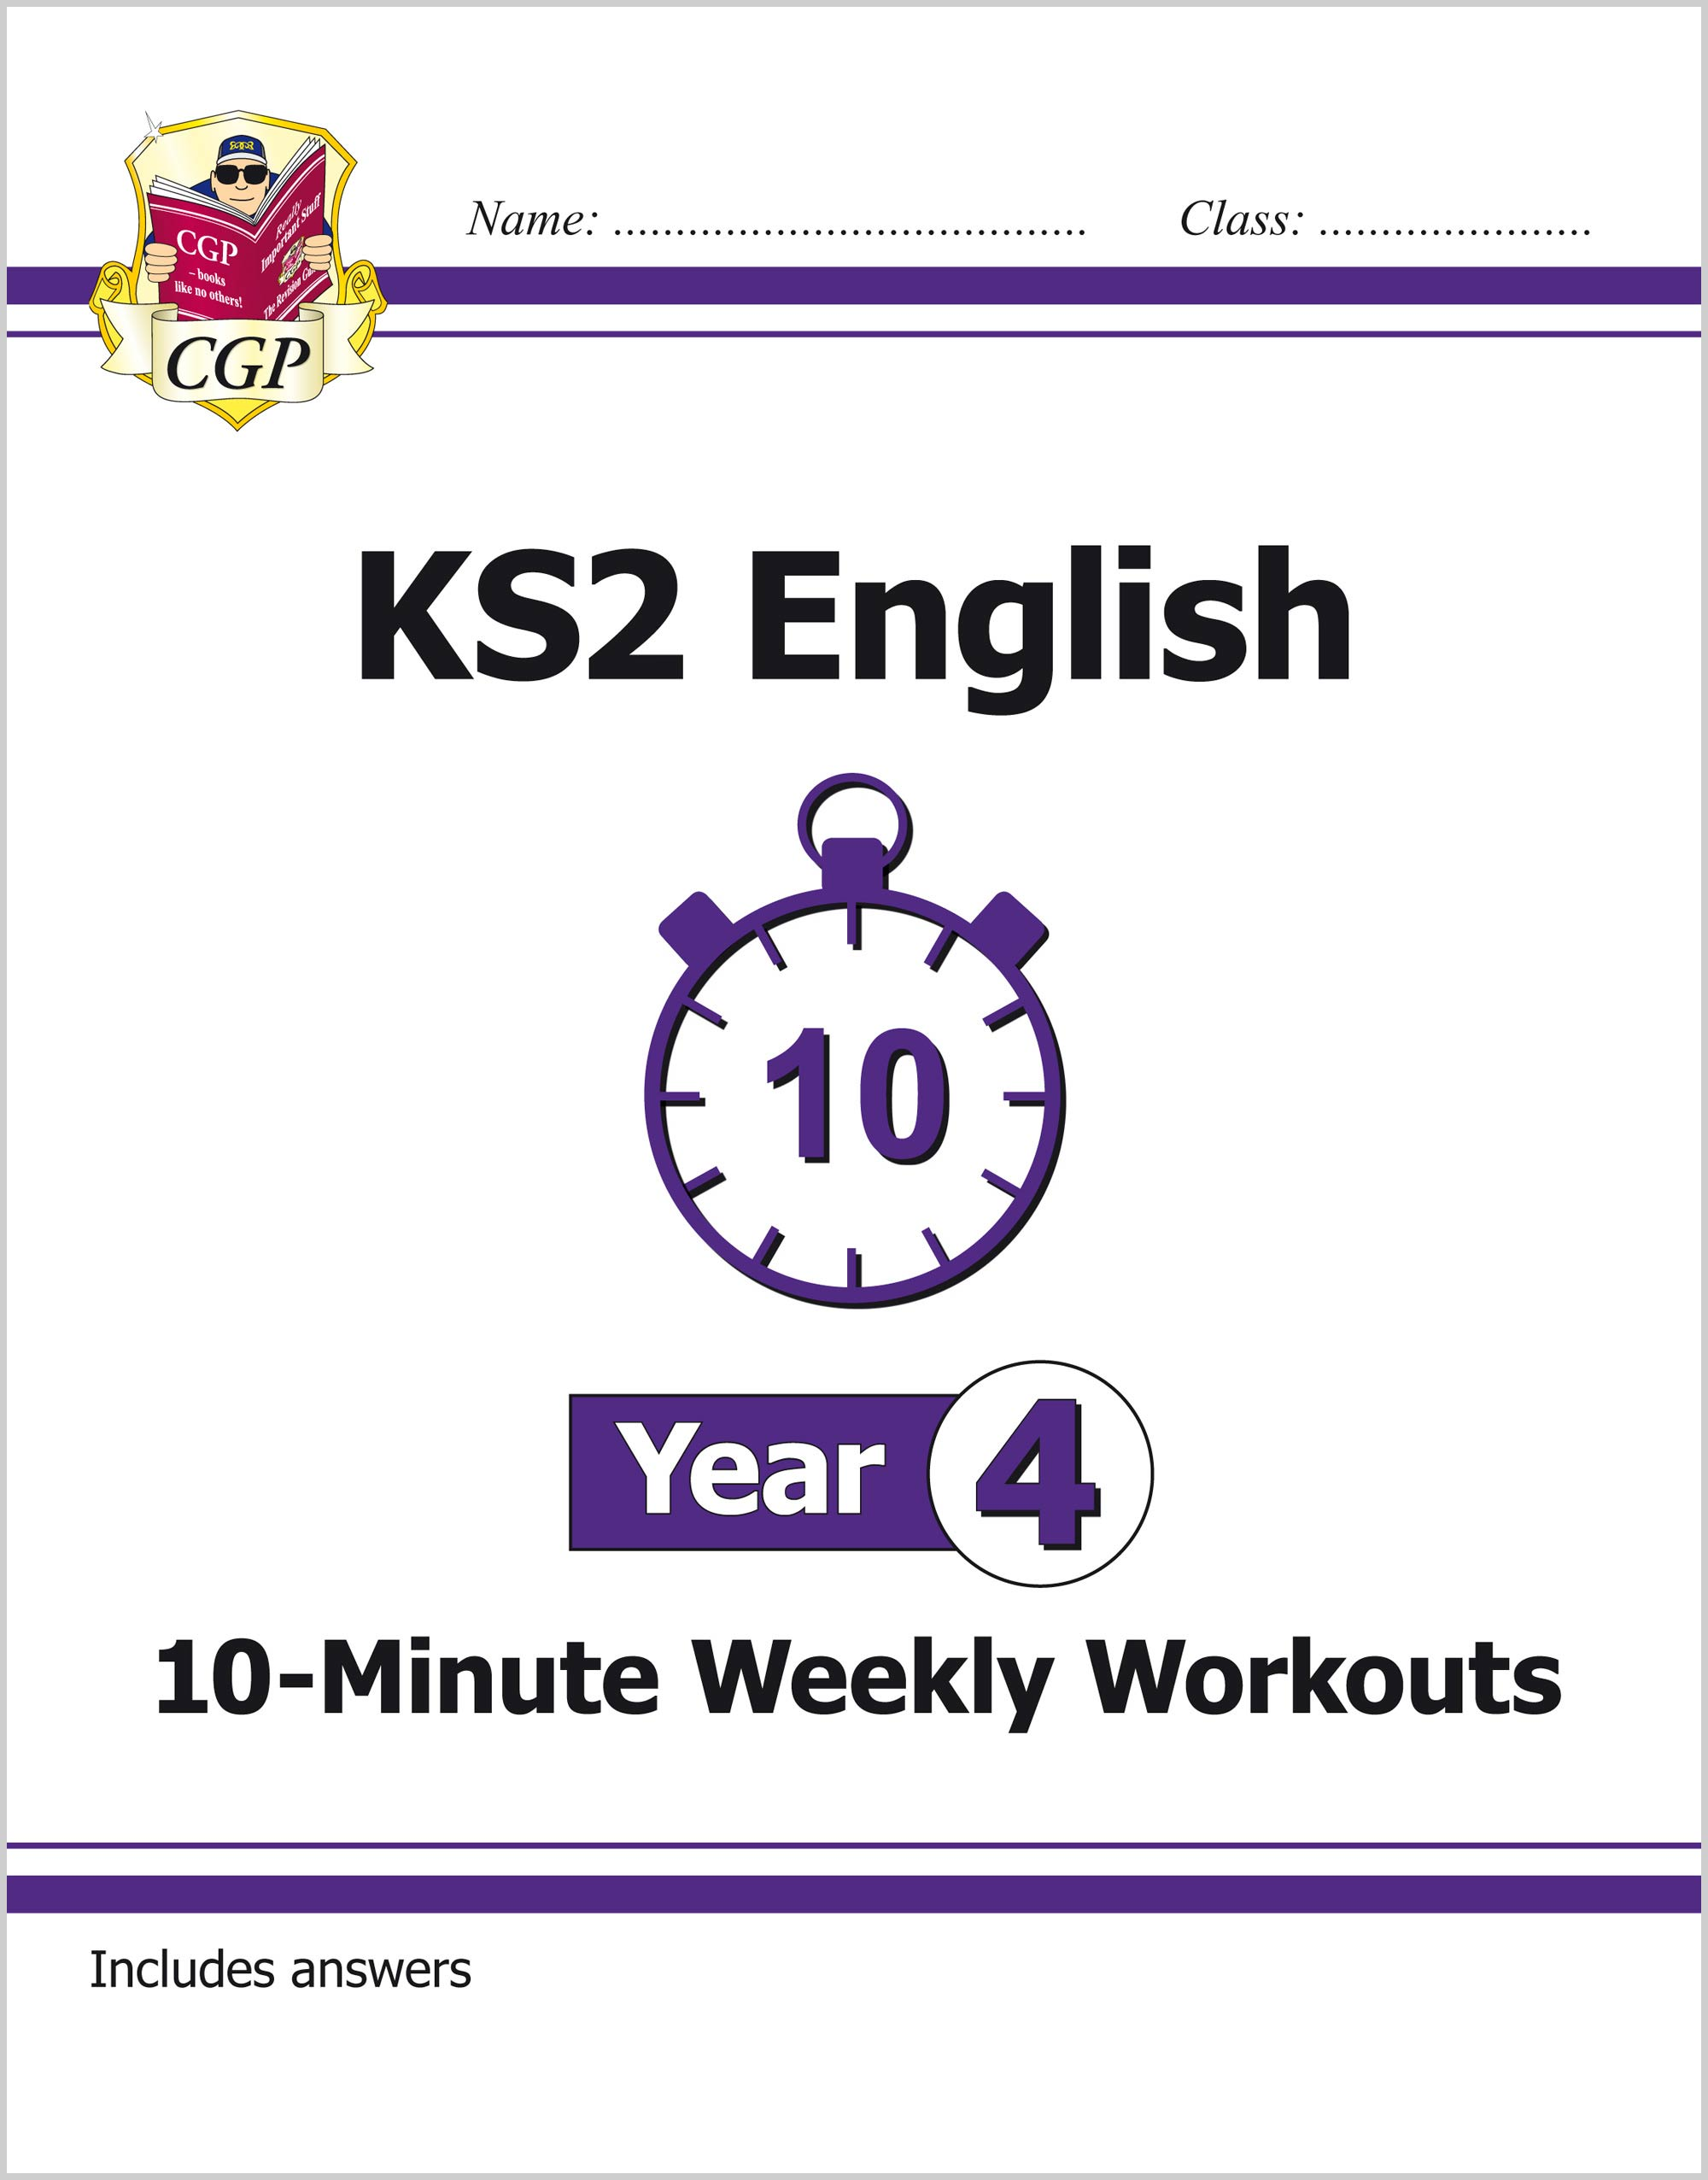 E4XW21 - New KS2 English 10-Minute Weekly Workouts - Year 4